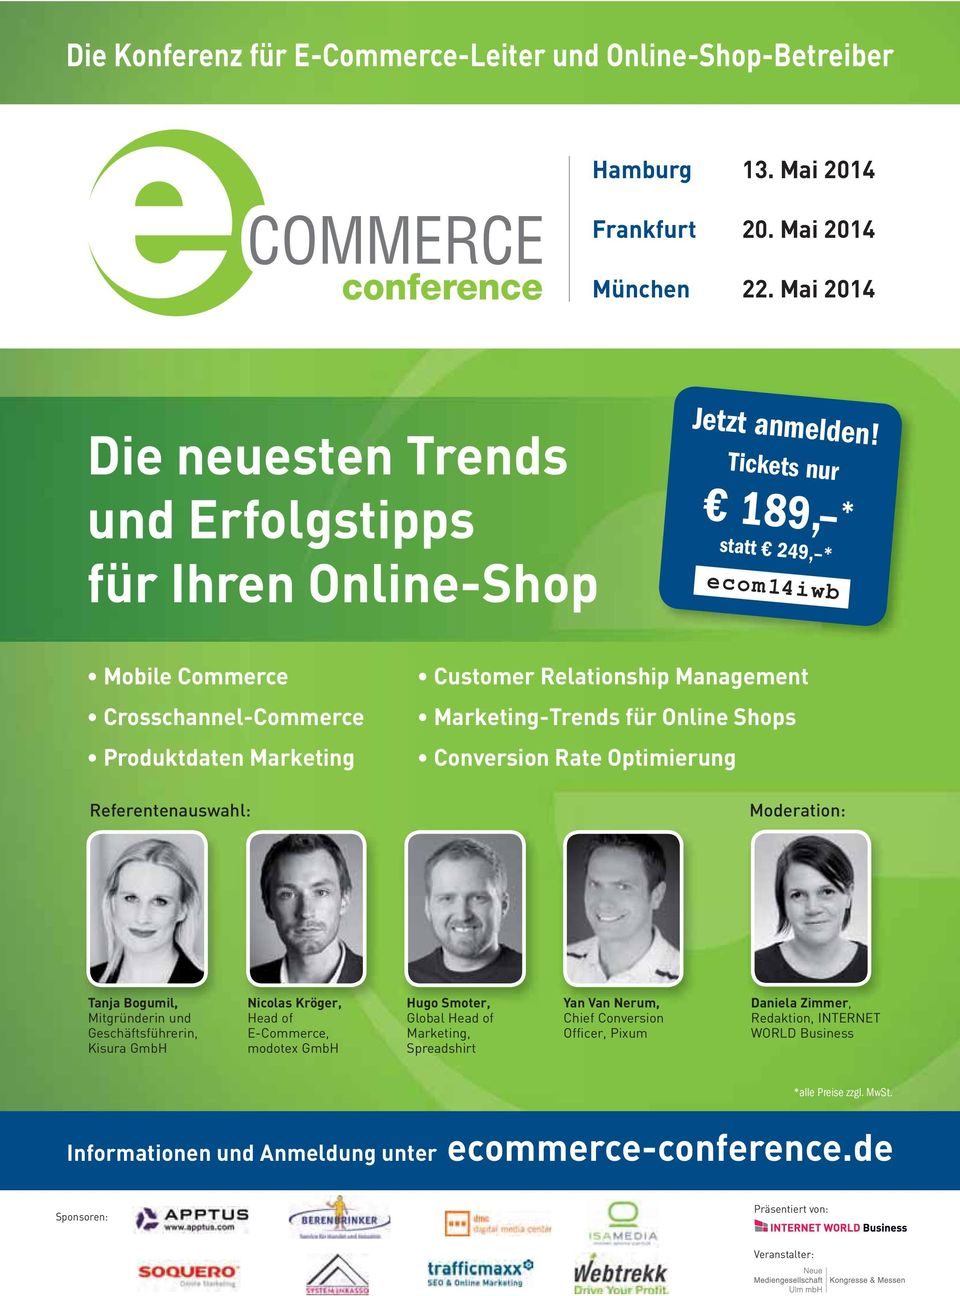 Tickets nur 189, * statt 249, * ecom14iwb Mobile Commerce Crosschannel-Commerce Referentenauswahl: Customer Relationship Management für Online Shops Conversion Rate Optimierung Moderation: